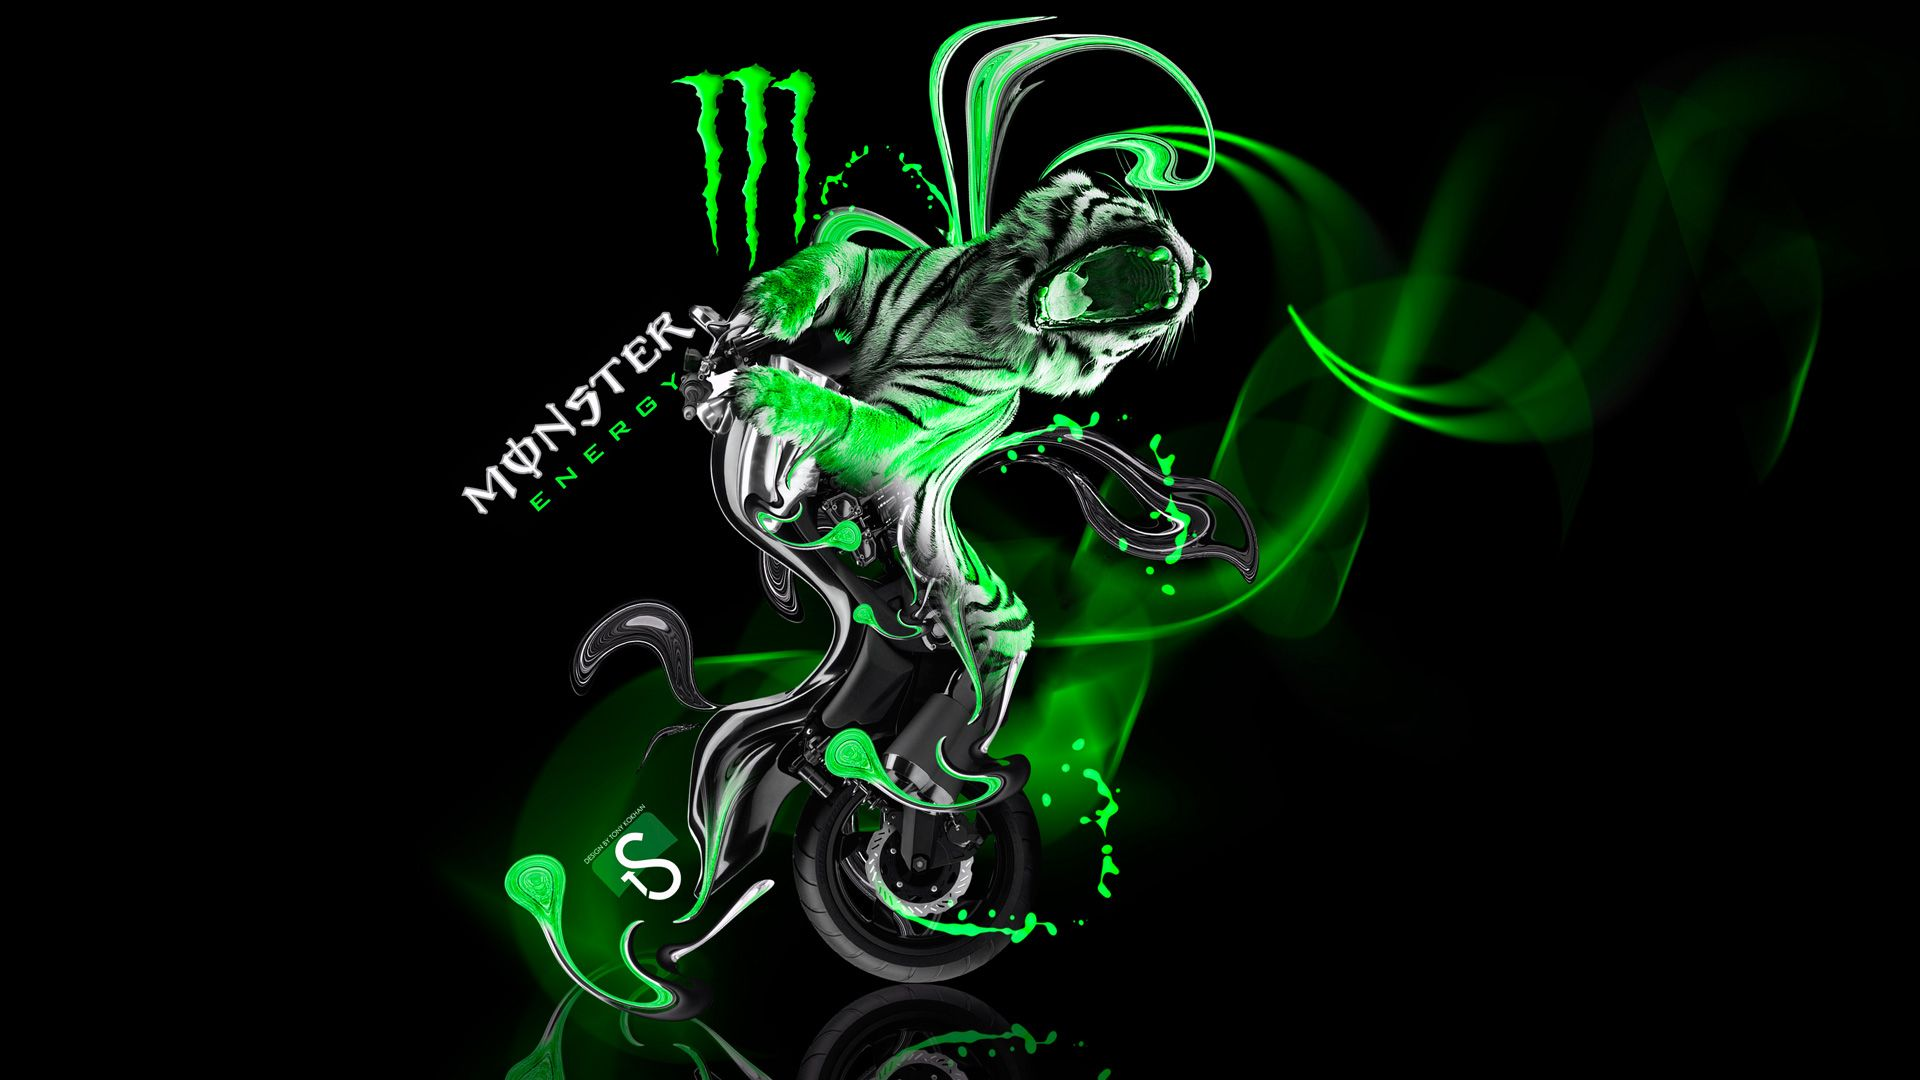 Cool monster backgrounds hd wallpapers pinterest hd cool monster backgrounds monster huntermonster energyhd voltagebd Choice Image